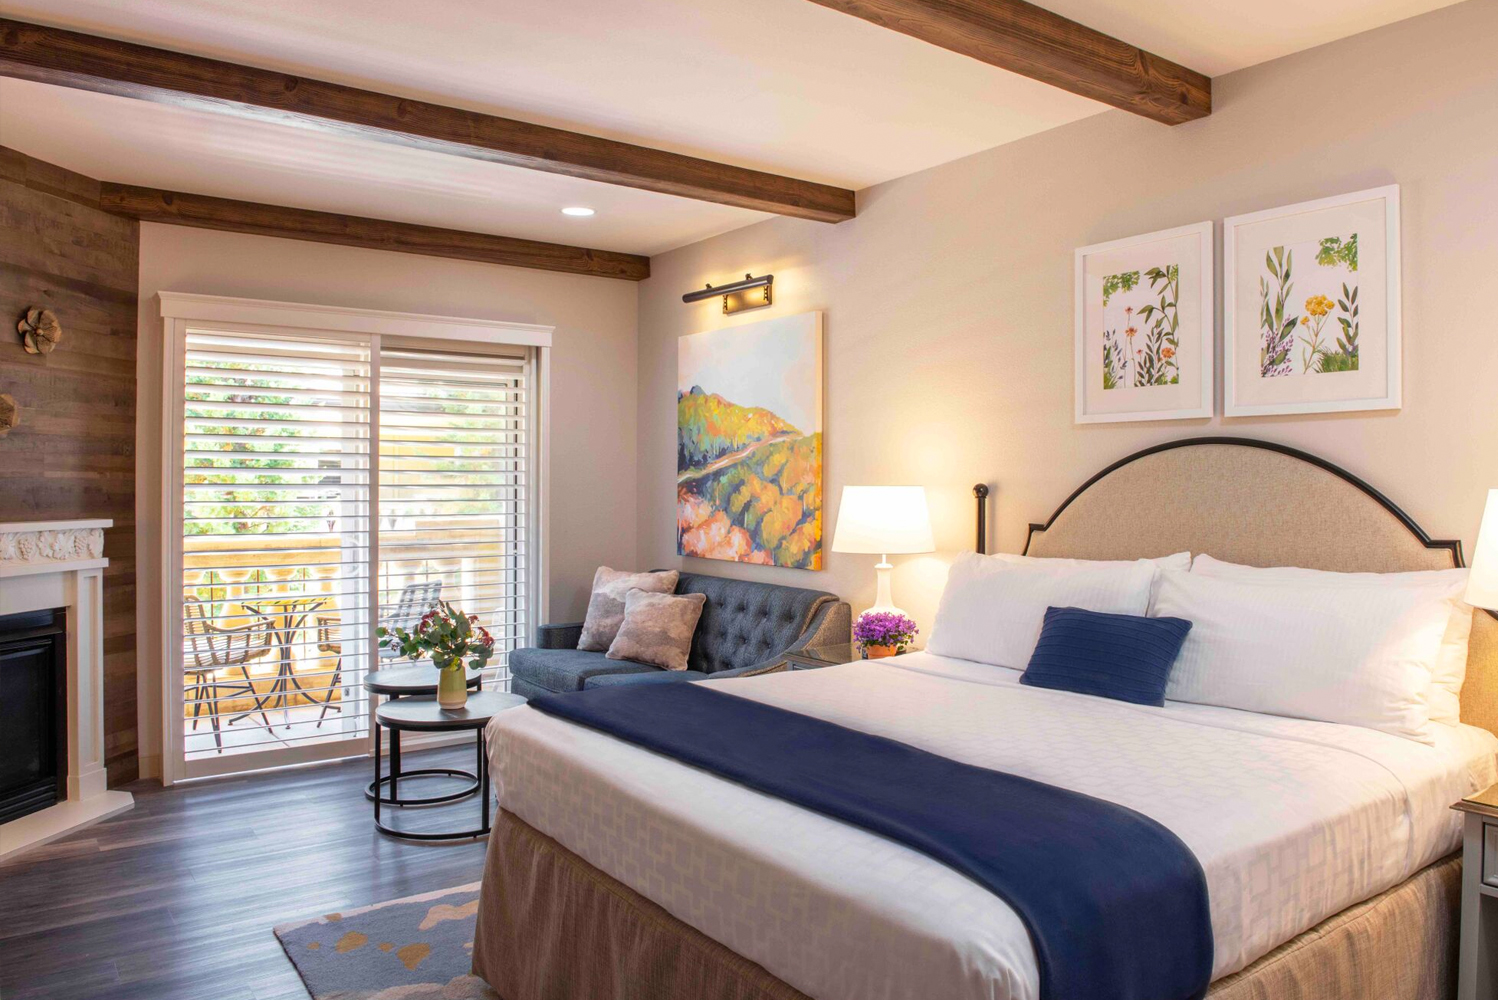 The Best Western Dry Creek Inn, a two-building Mediterranean-style villa located in the heart of Healdsburg, California, unveiled a country-inspired look following a $4 millionrenovation to the Villa Toscana.